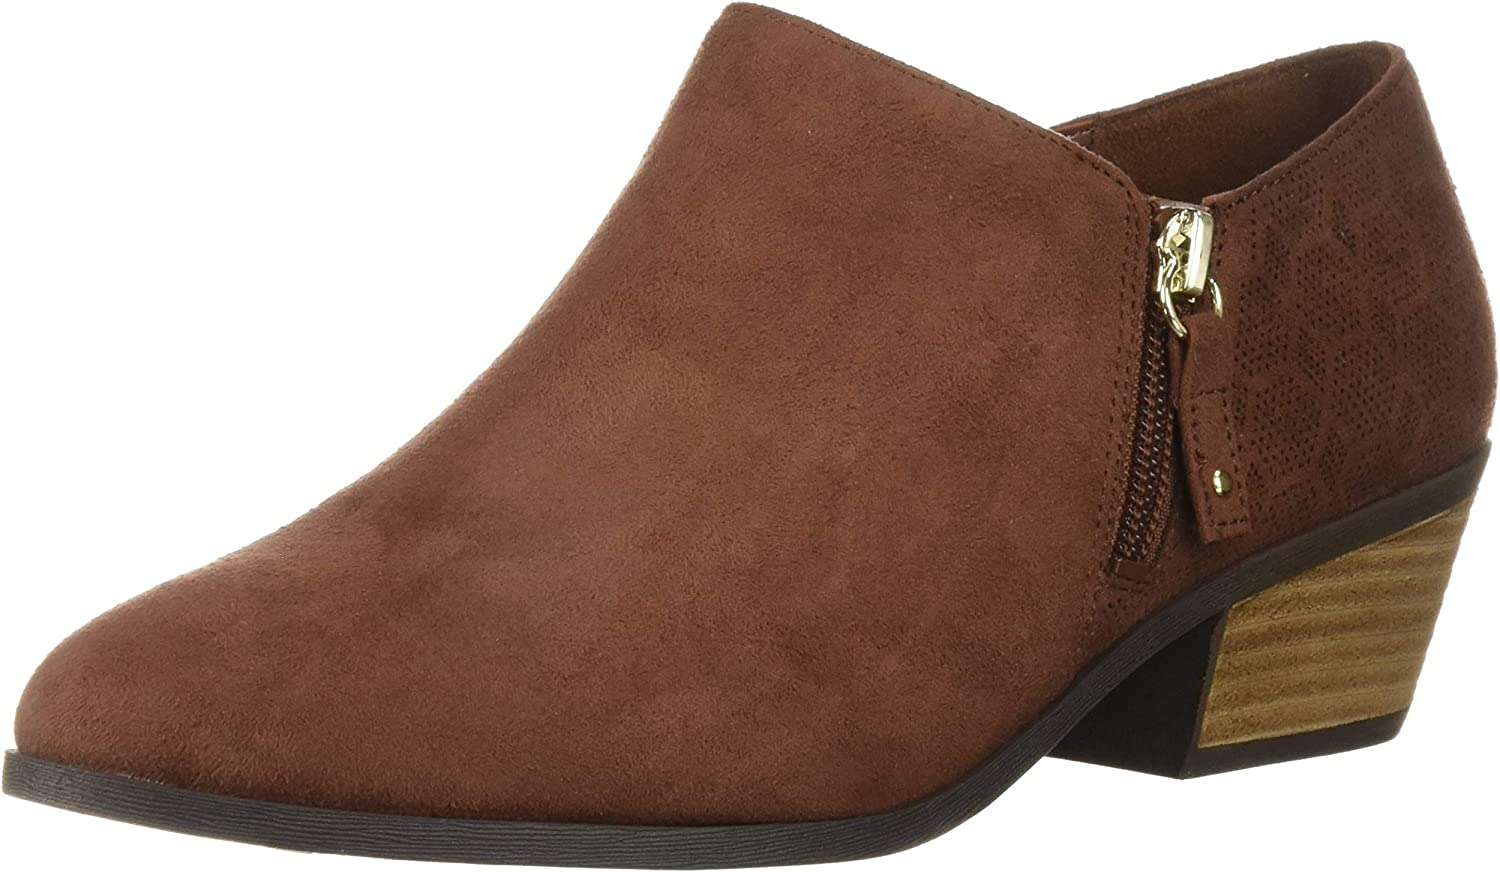 Dr. Scholl's Womens Brief Ankle Boot